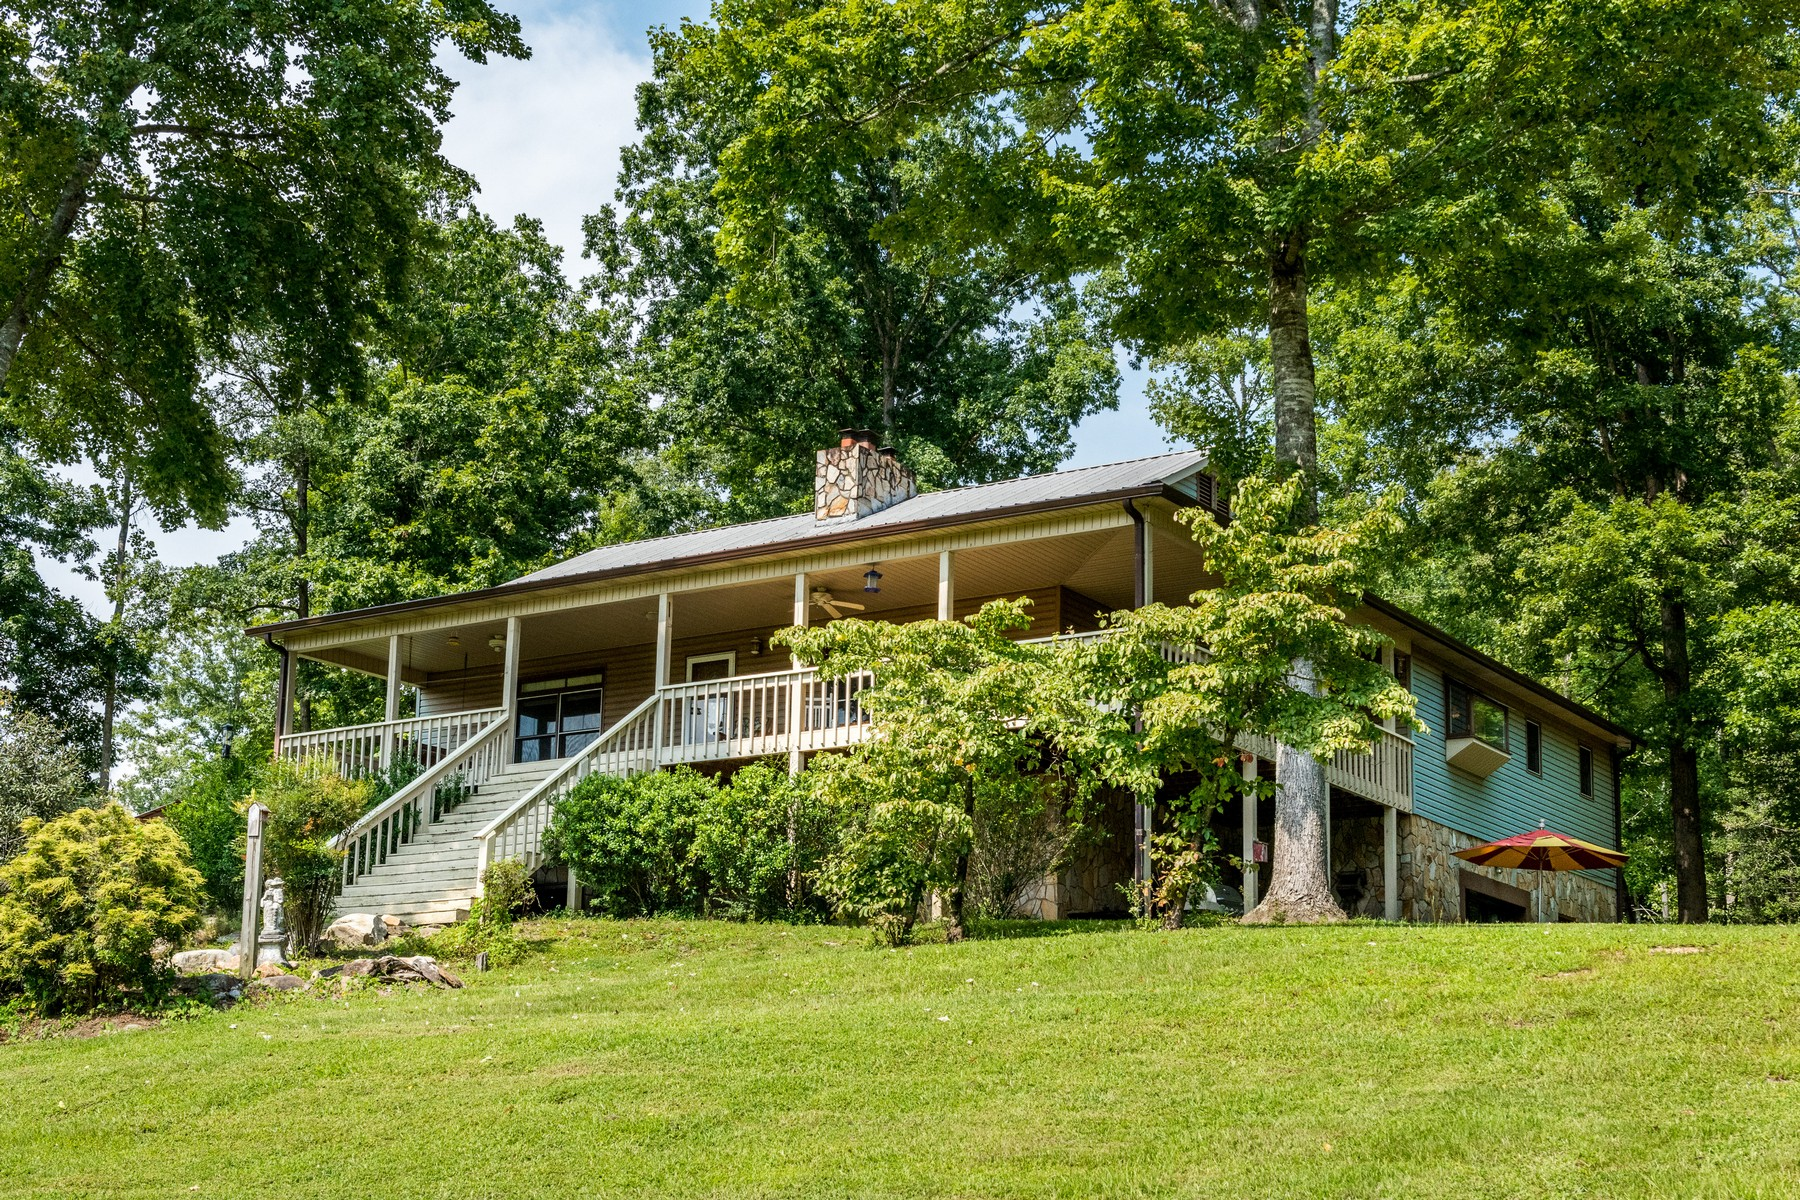 Single Family Homes for Sale at 2150 Cedar Creek Road, Lake Lure, NC 2150 Cedar Creek Road Lake Lure, North Carolina 28746 United States